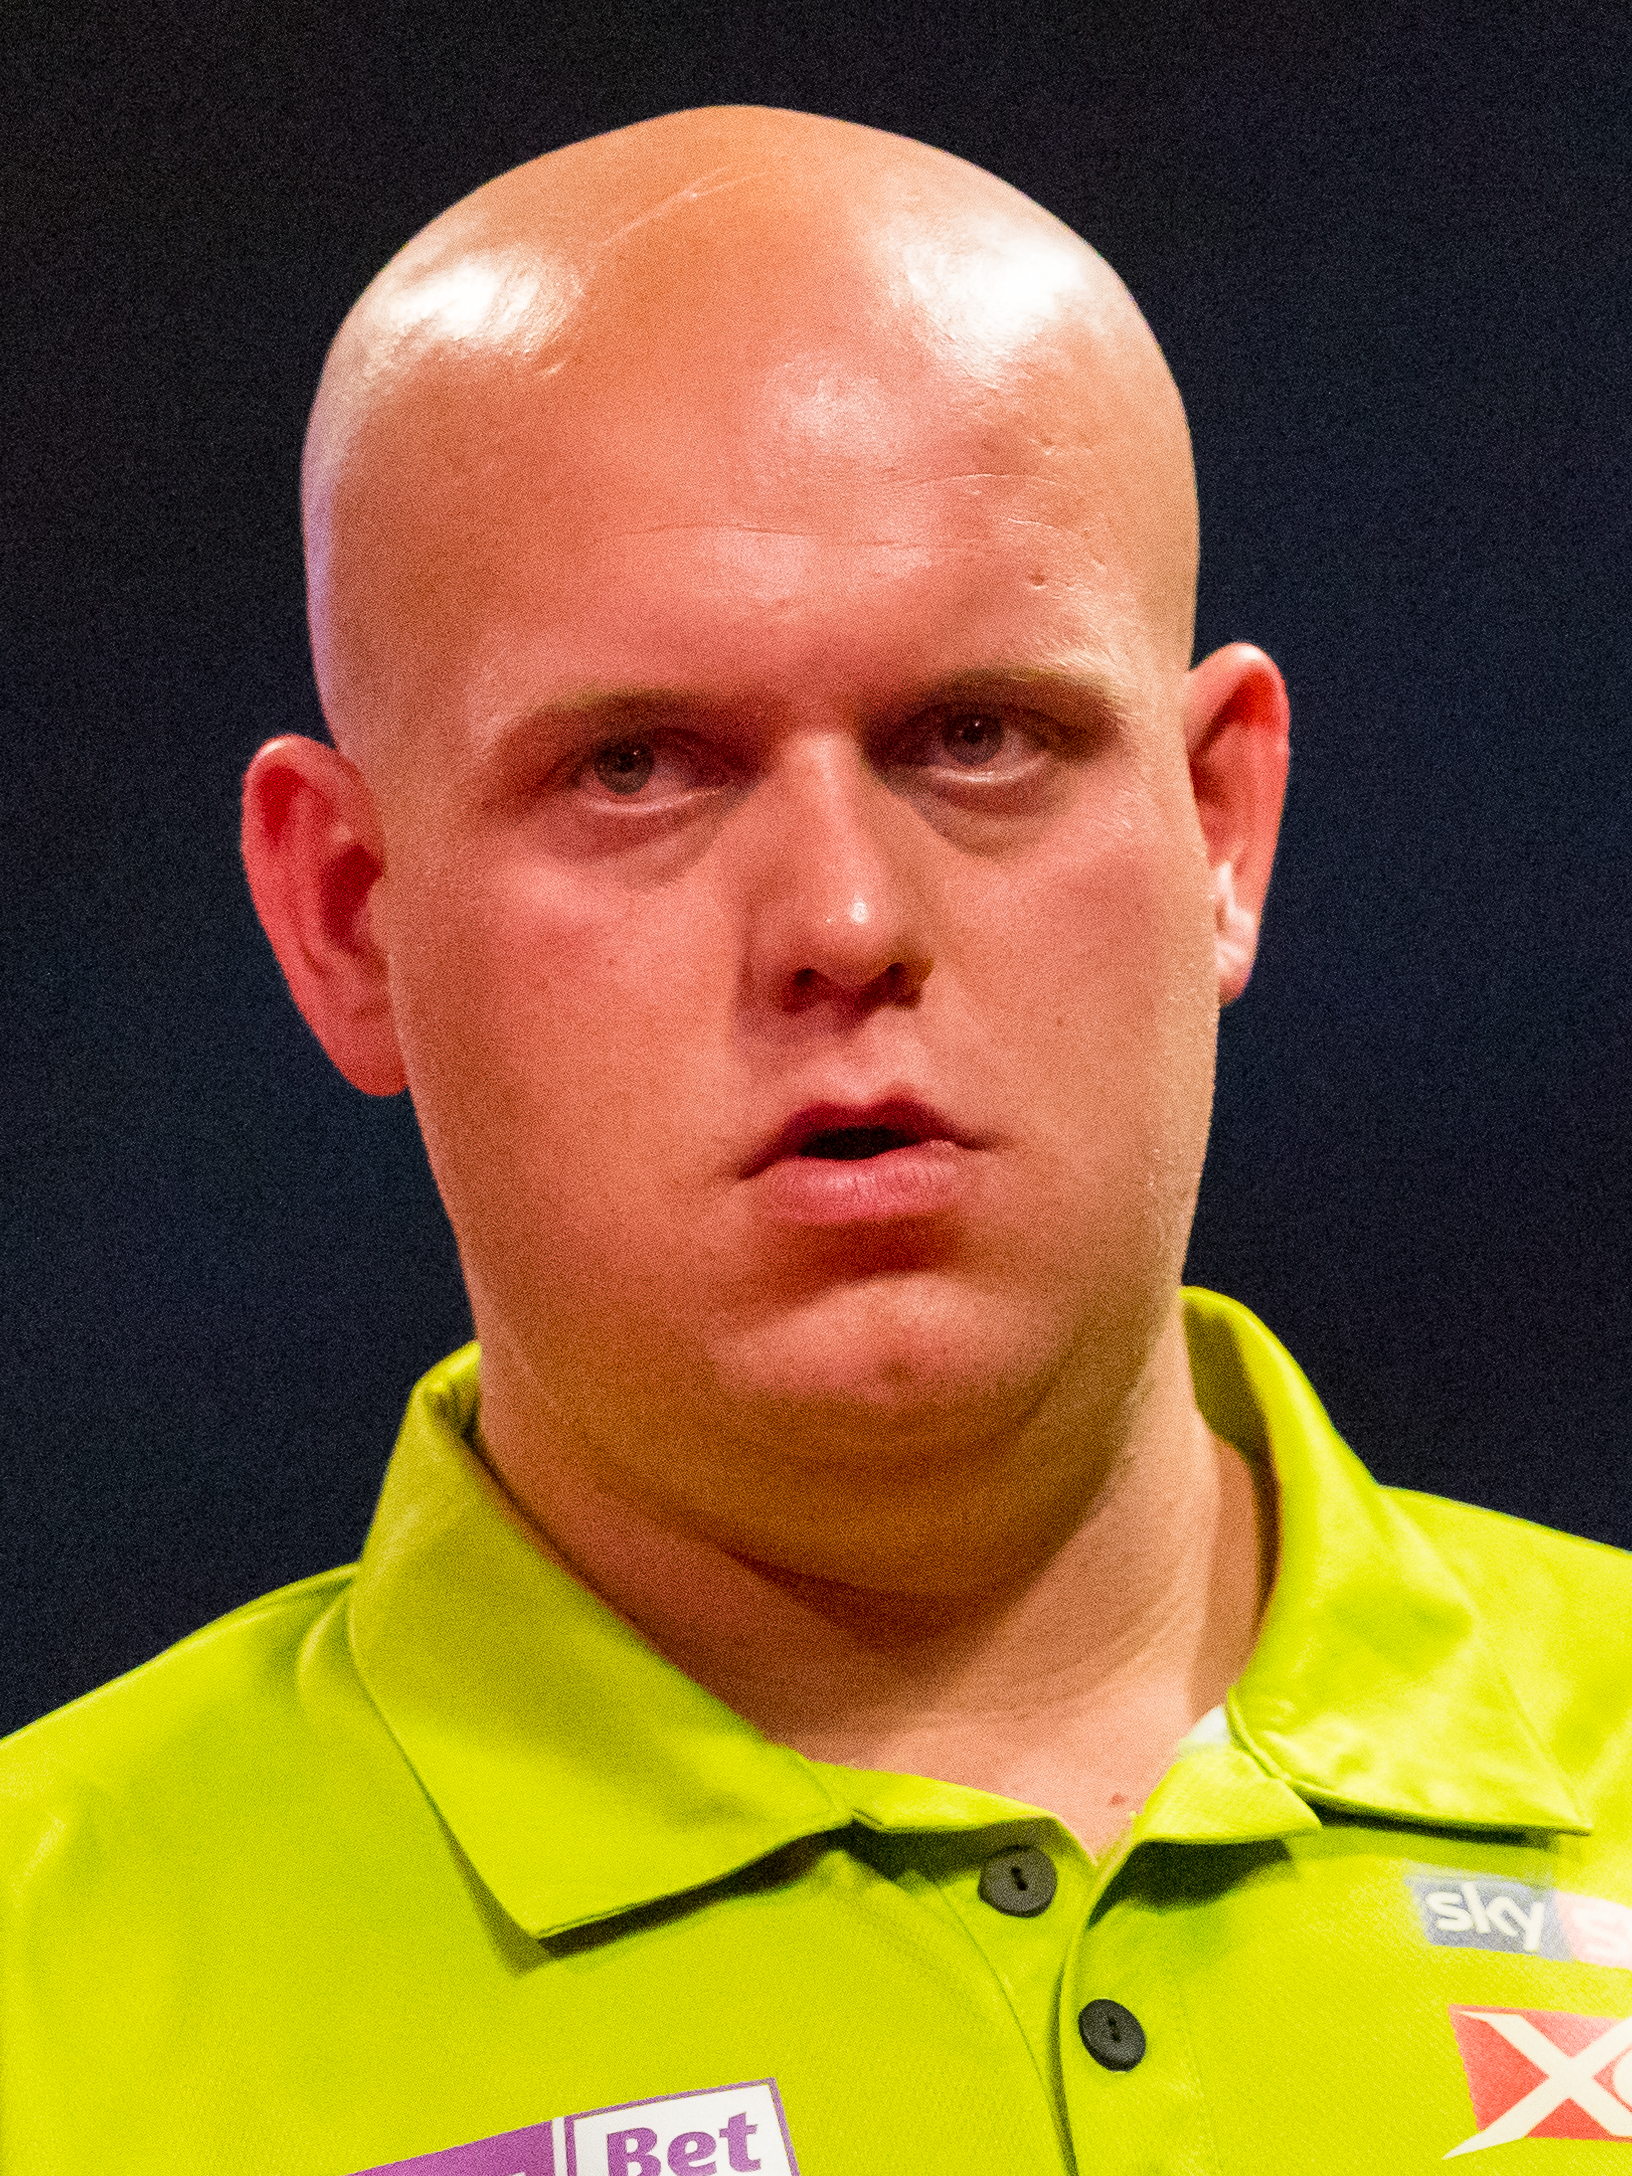 Michael van gerwen darts wm